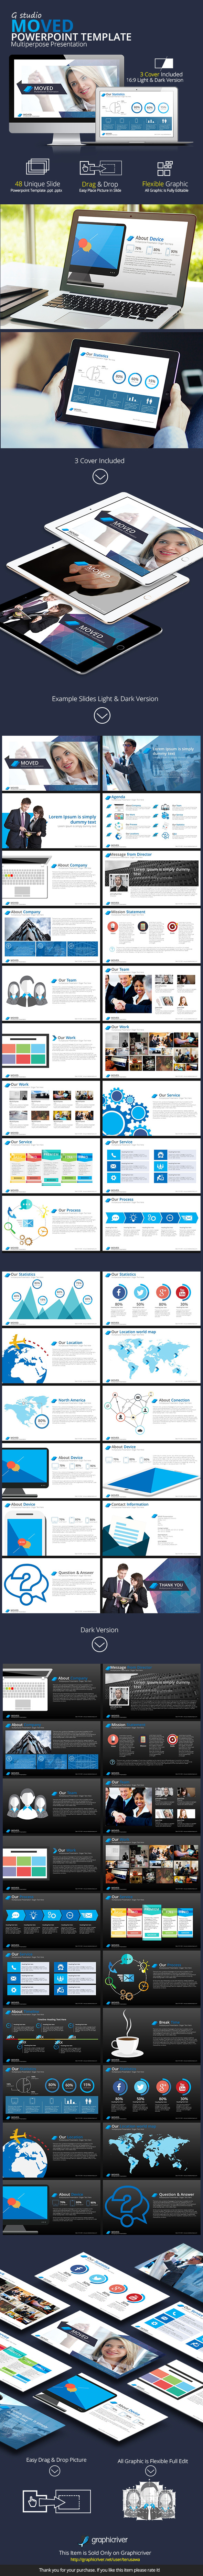 Moved Powerpoint Template - Business PowerPoint Templates